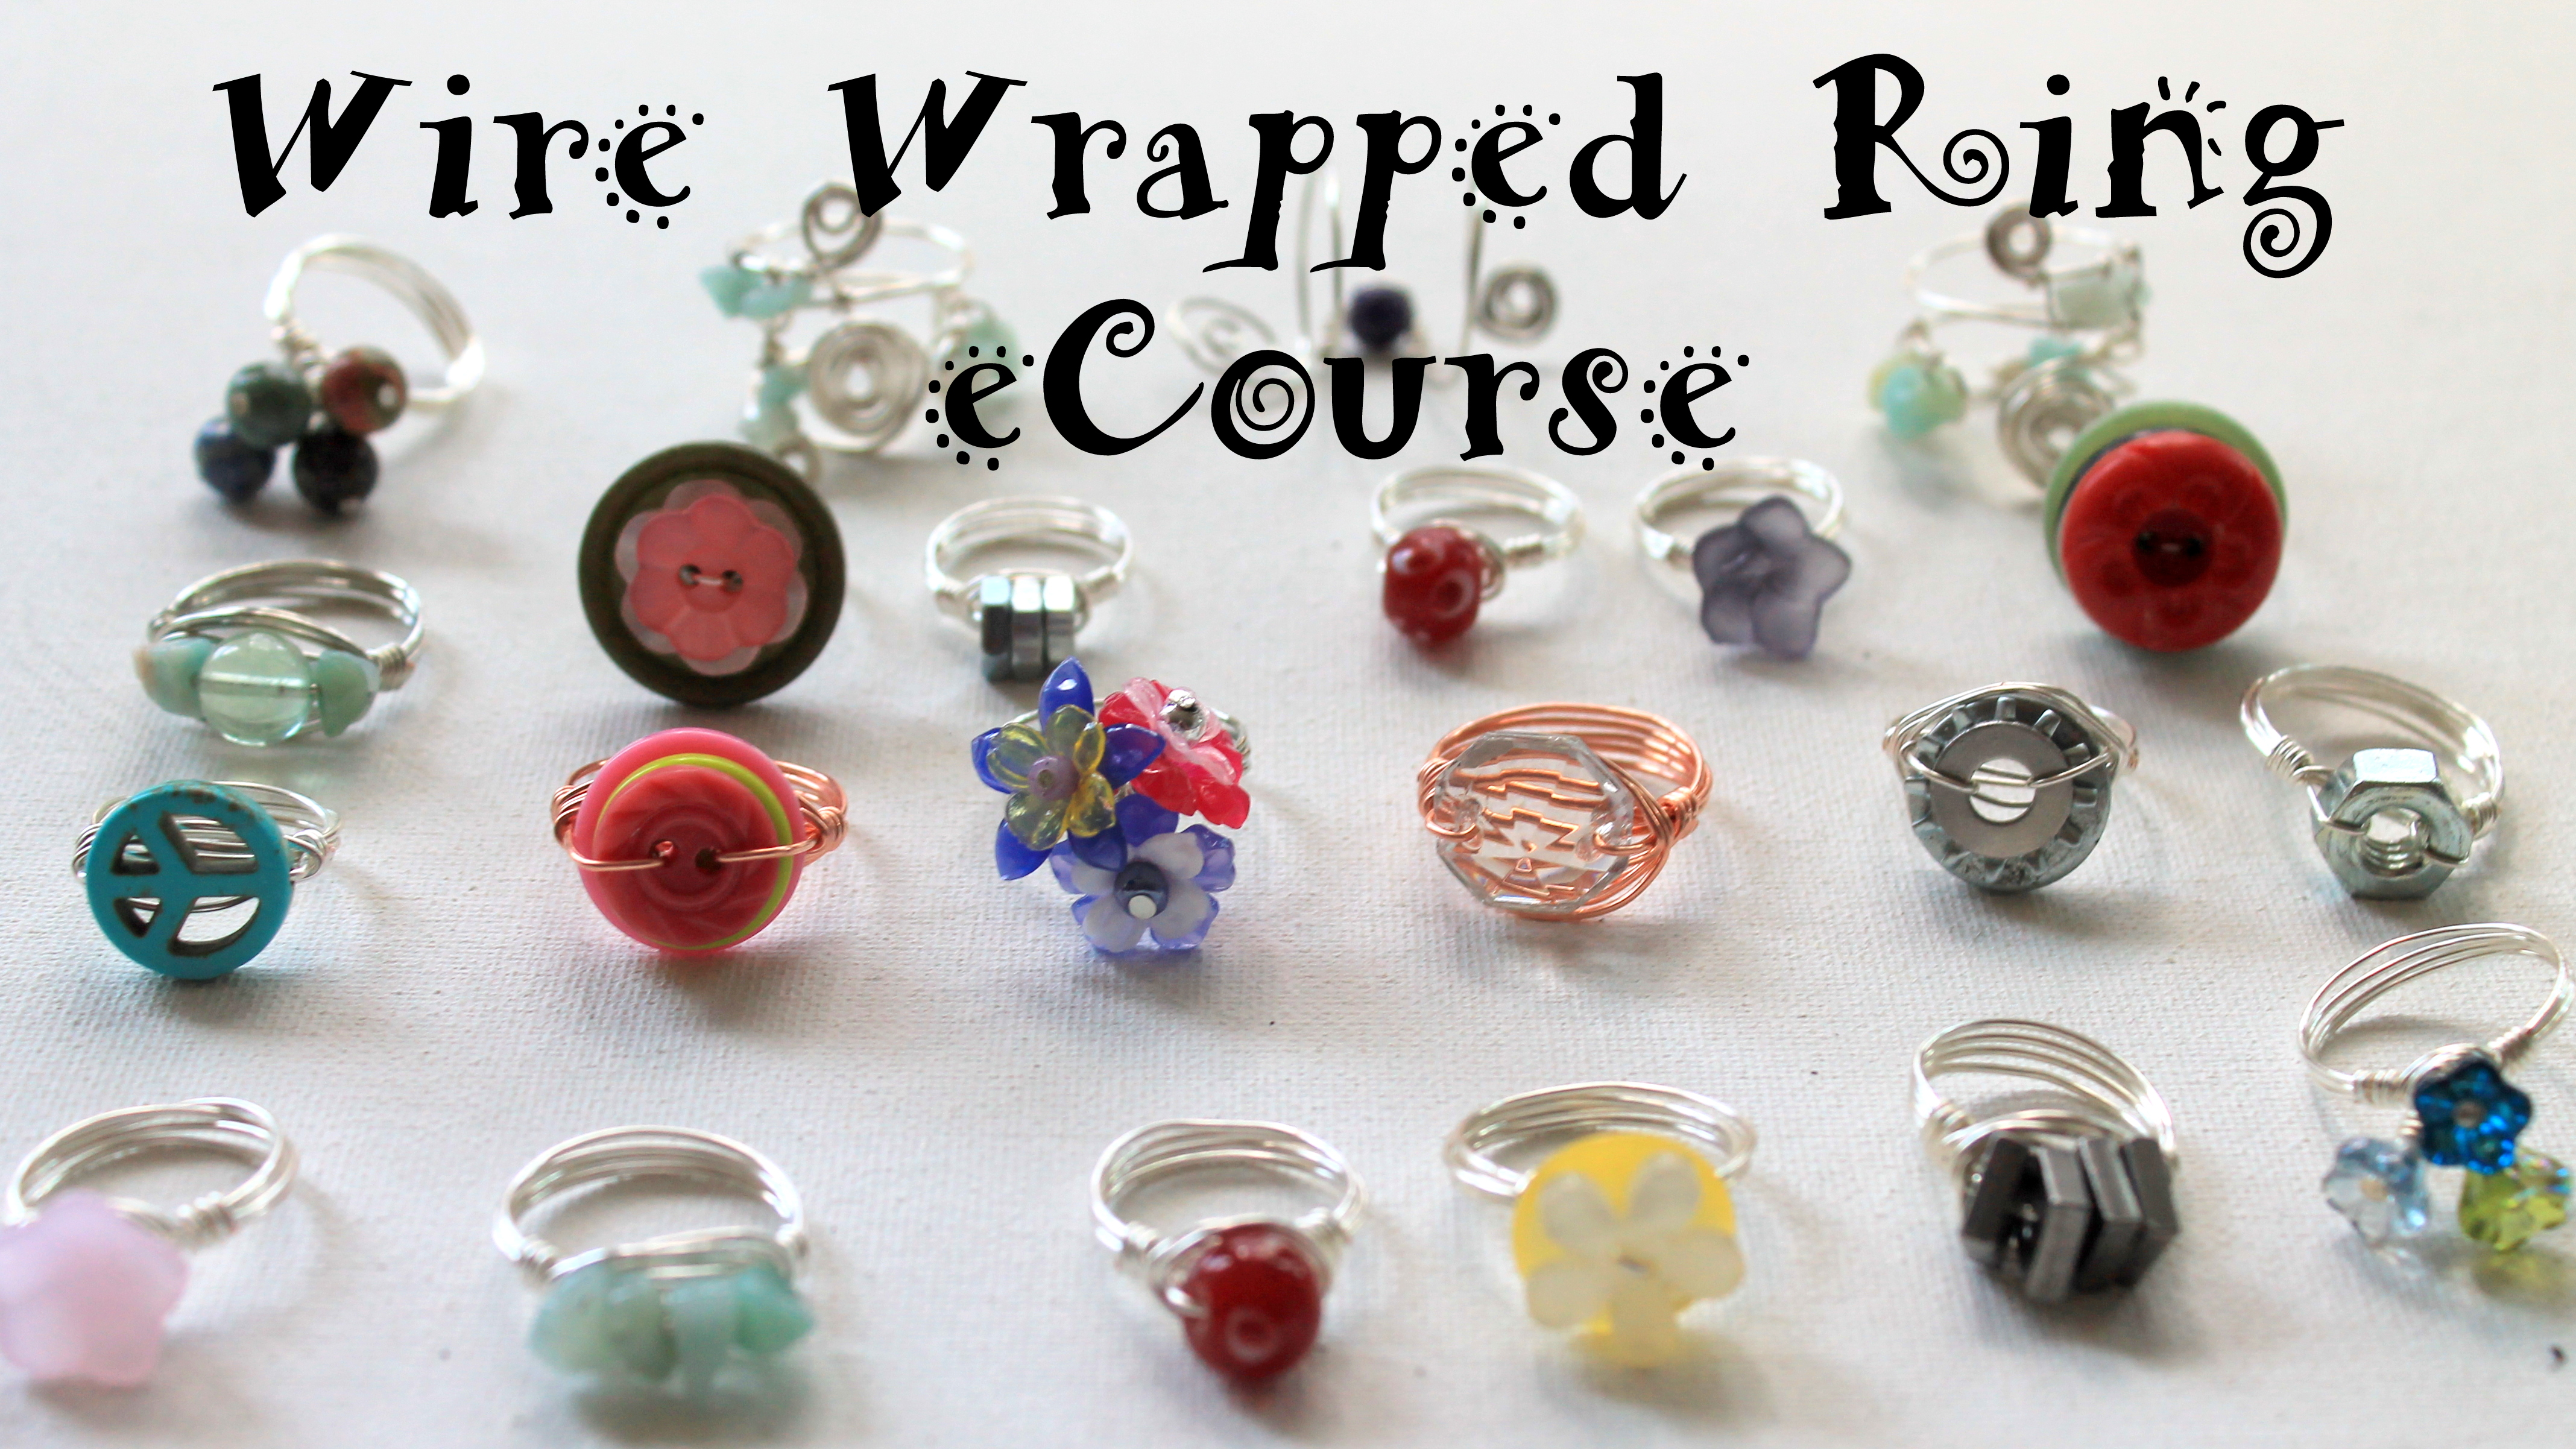 How to Make Wire Wrapped Rings